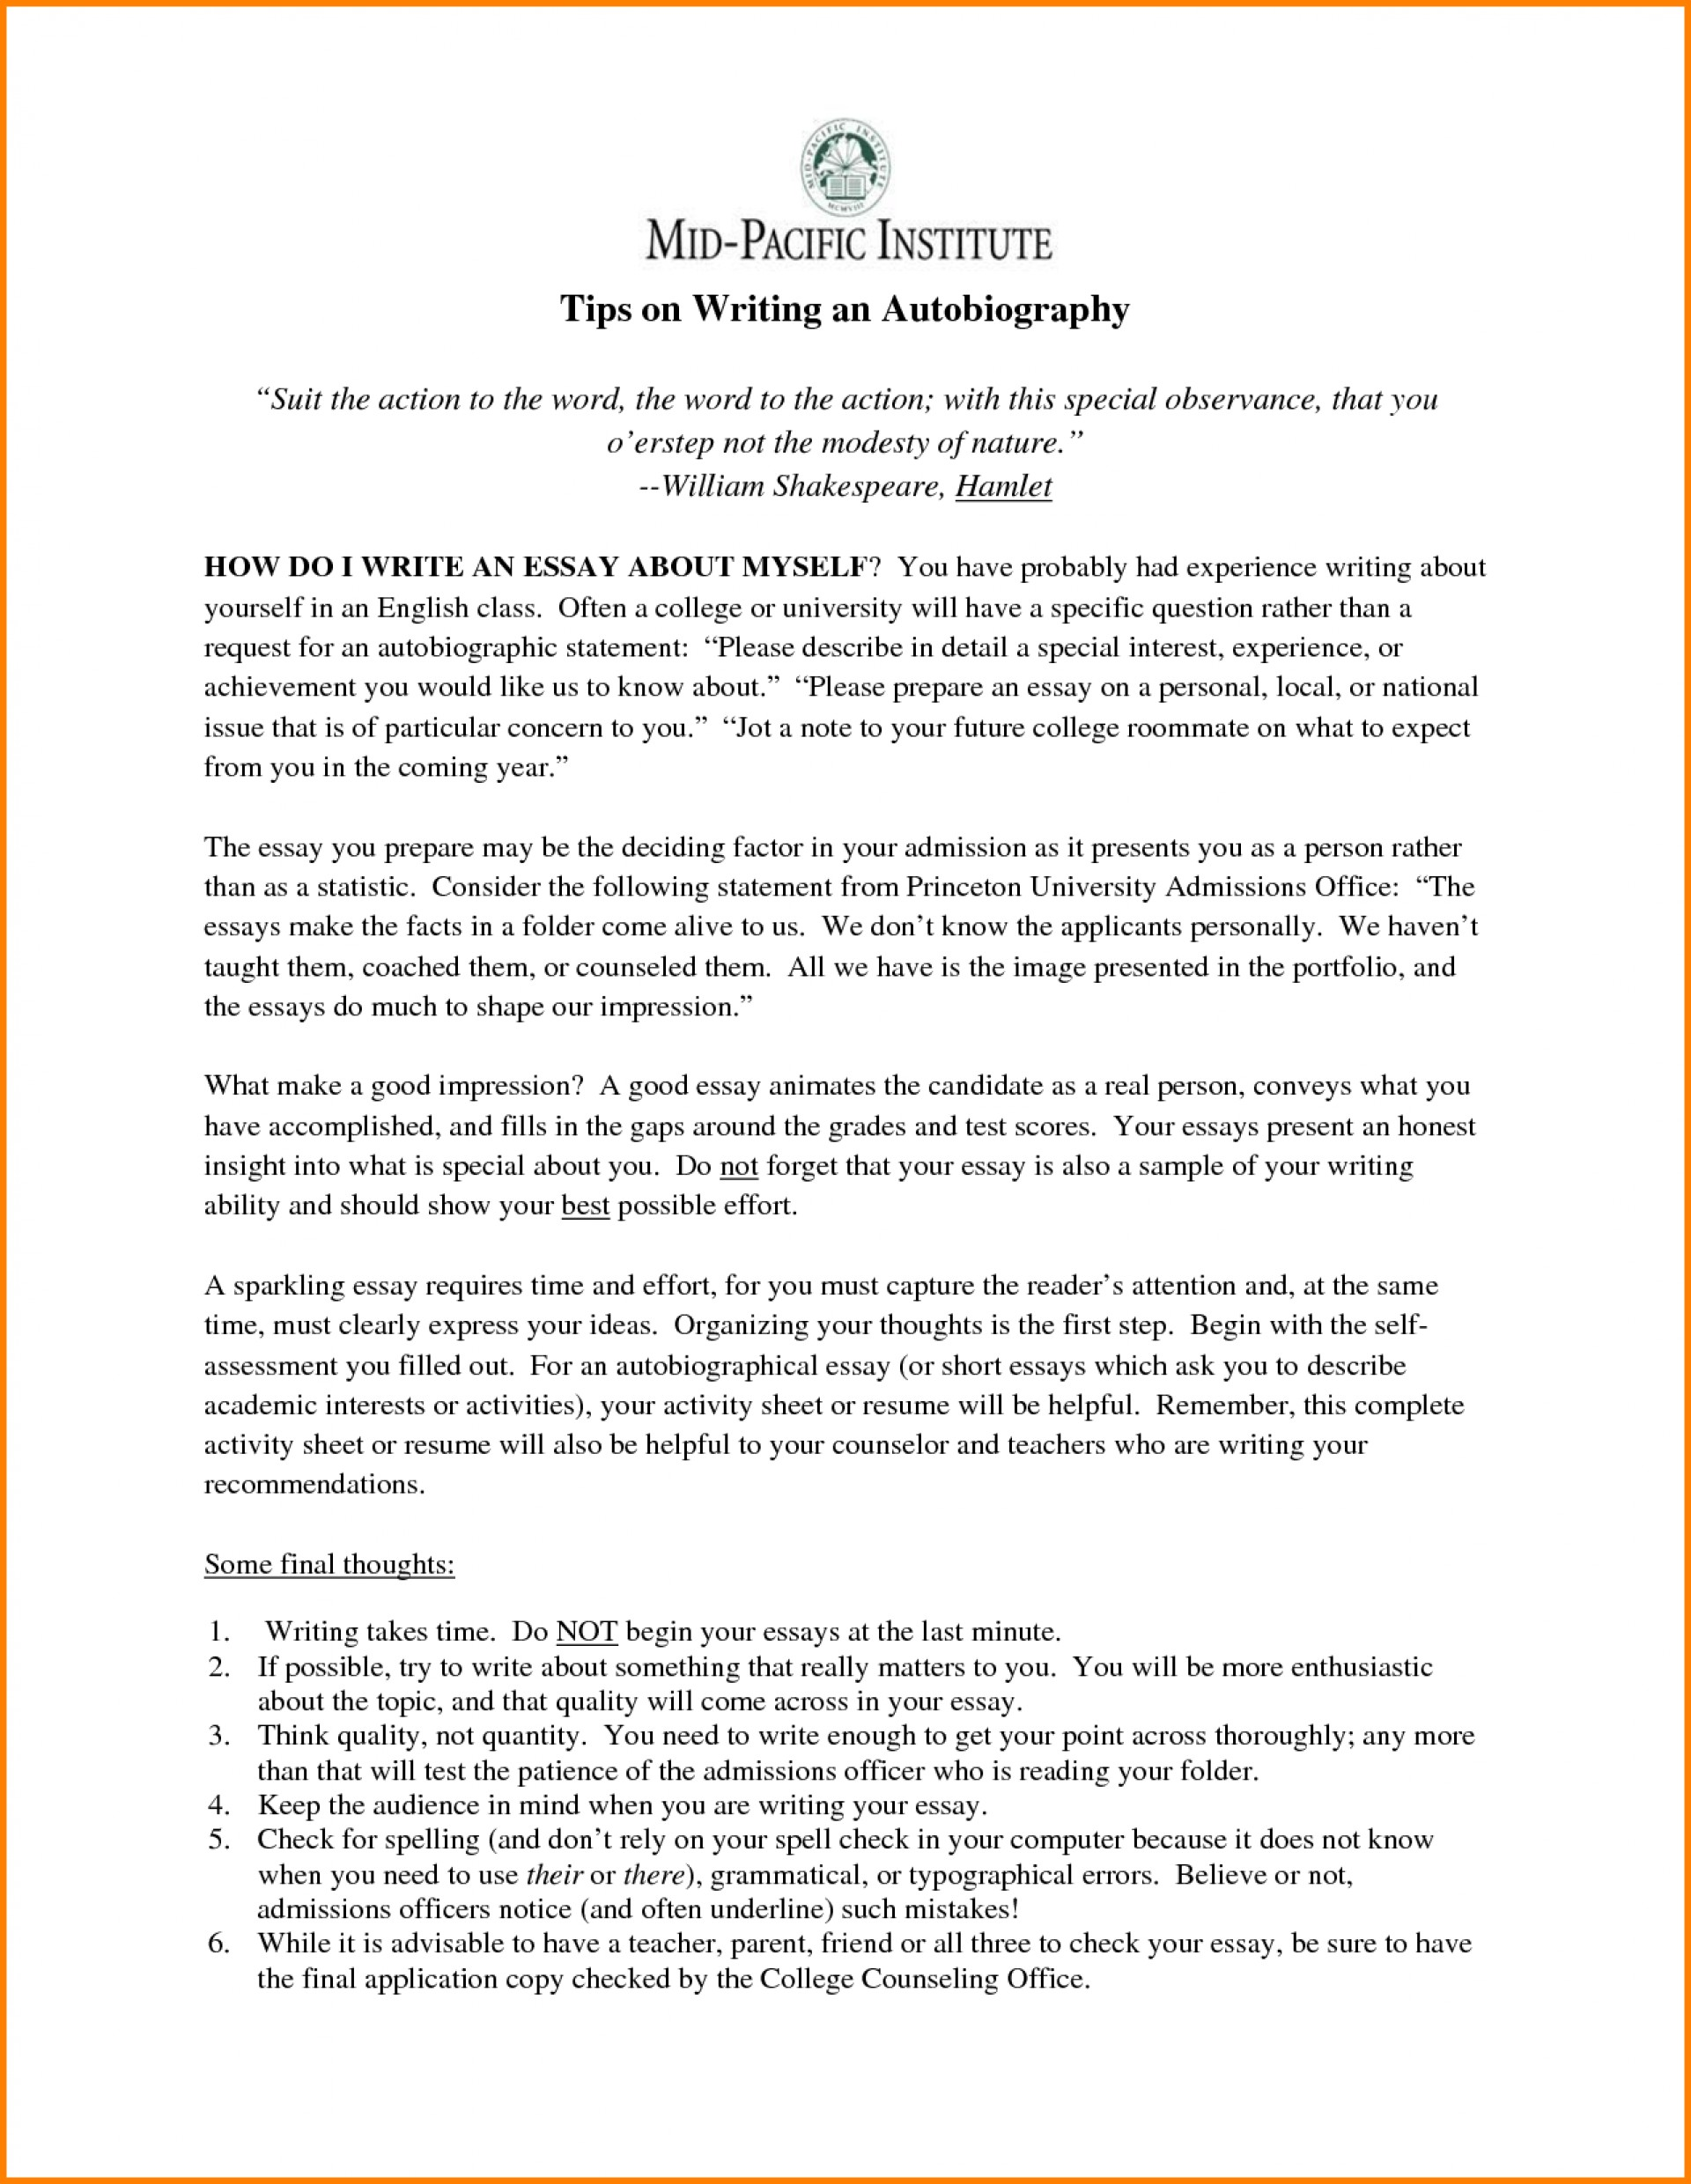 013 Best Solutions Of Tips On Writing Narrative Essay How To Start College Spectacular Write Application Outline Breathtaking An About Yourself Argumentative Step By Pdf Conclusion Paragraph 1920